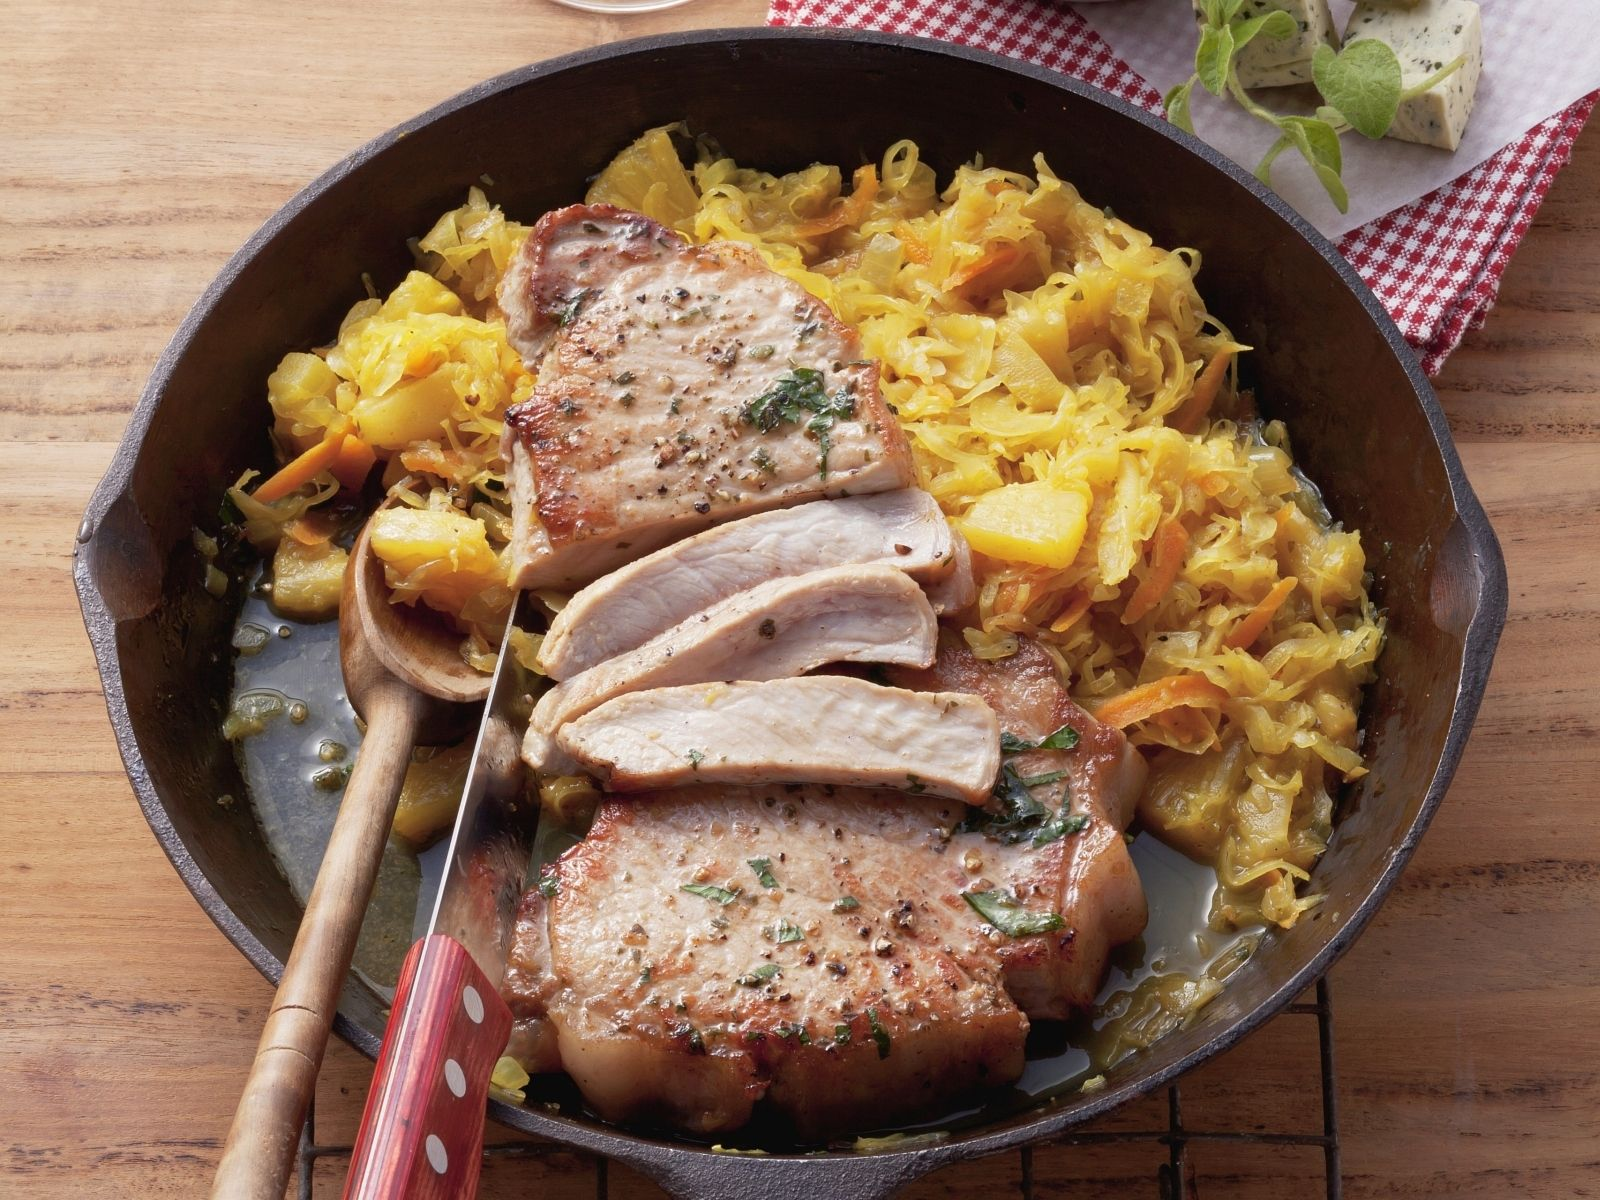 Incredible Pork Chop Pineapple Sauerkraut Recipe Eater Pineapple Pork Chops Recipe Easy Pineapple Pork Chops Pinterest nice food Pineapple Pork Chops